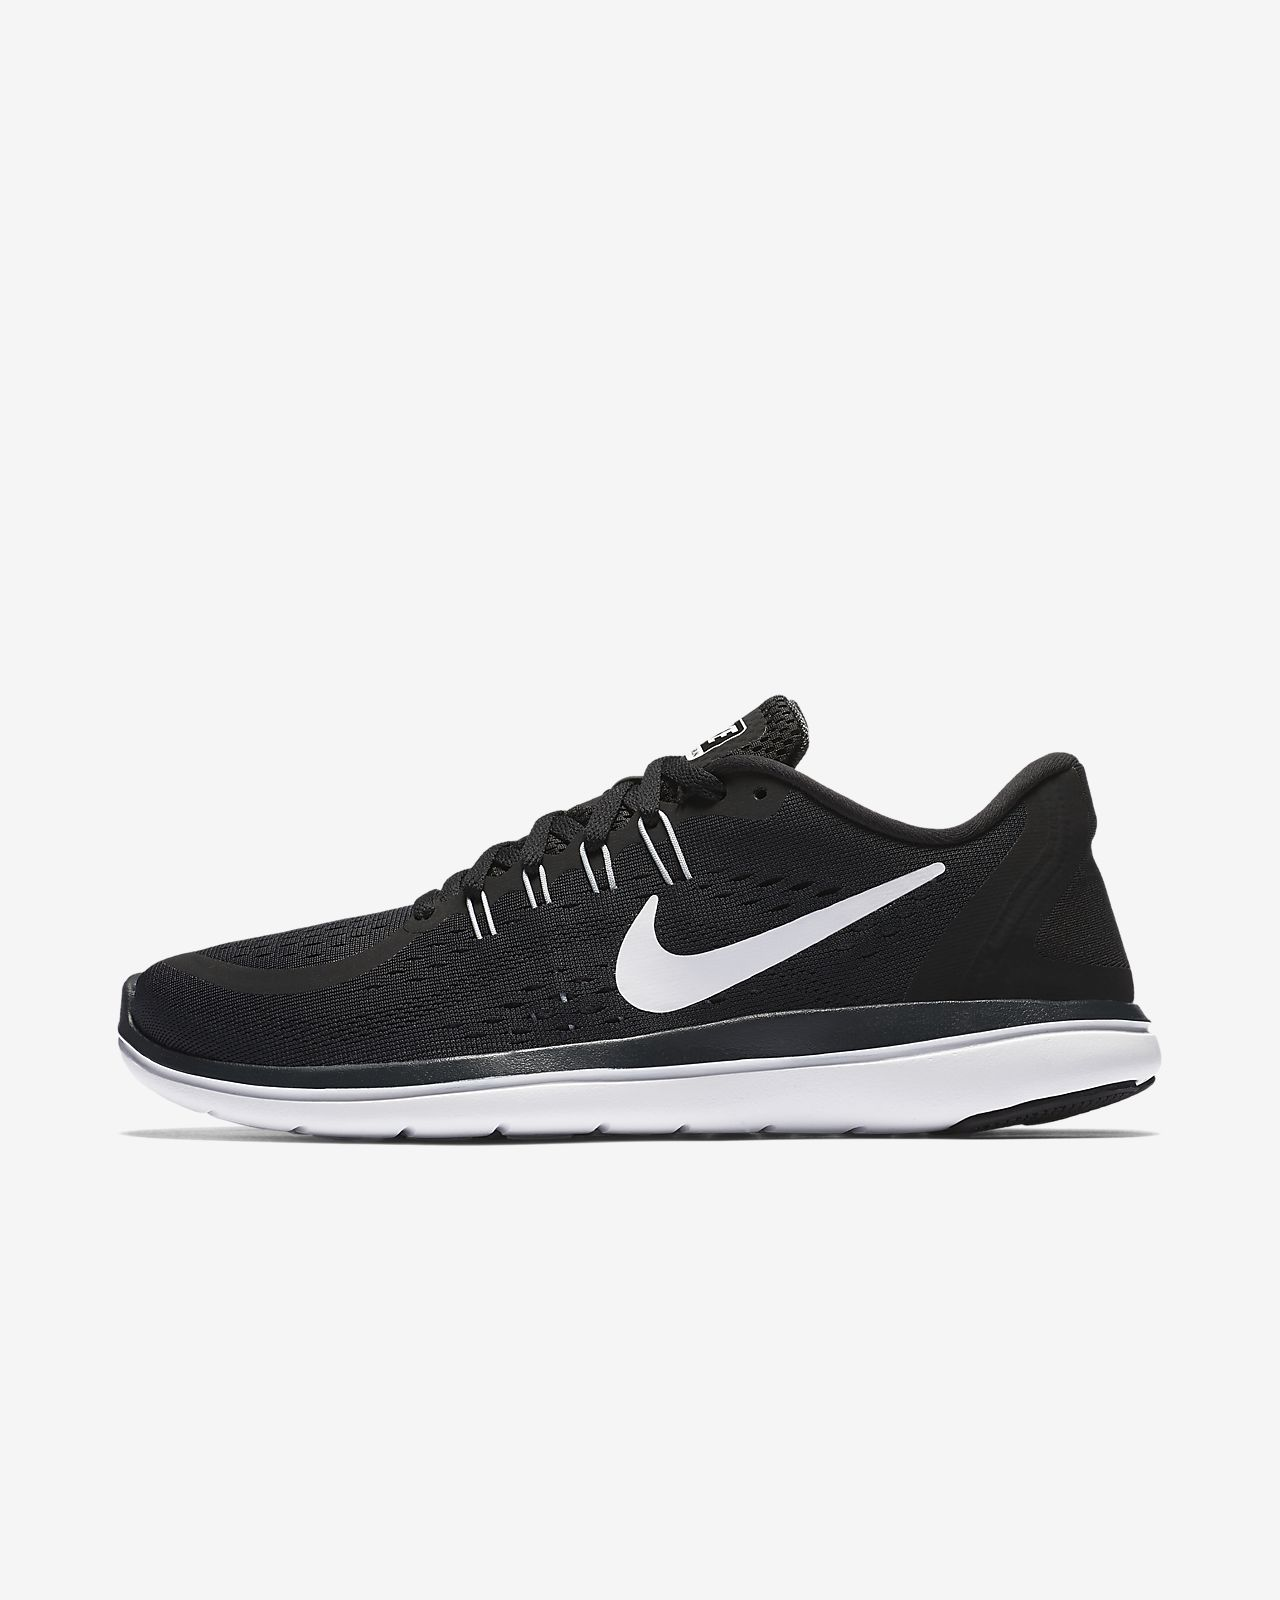 nike free rn 2017 id men's running shoe nz